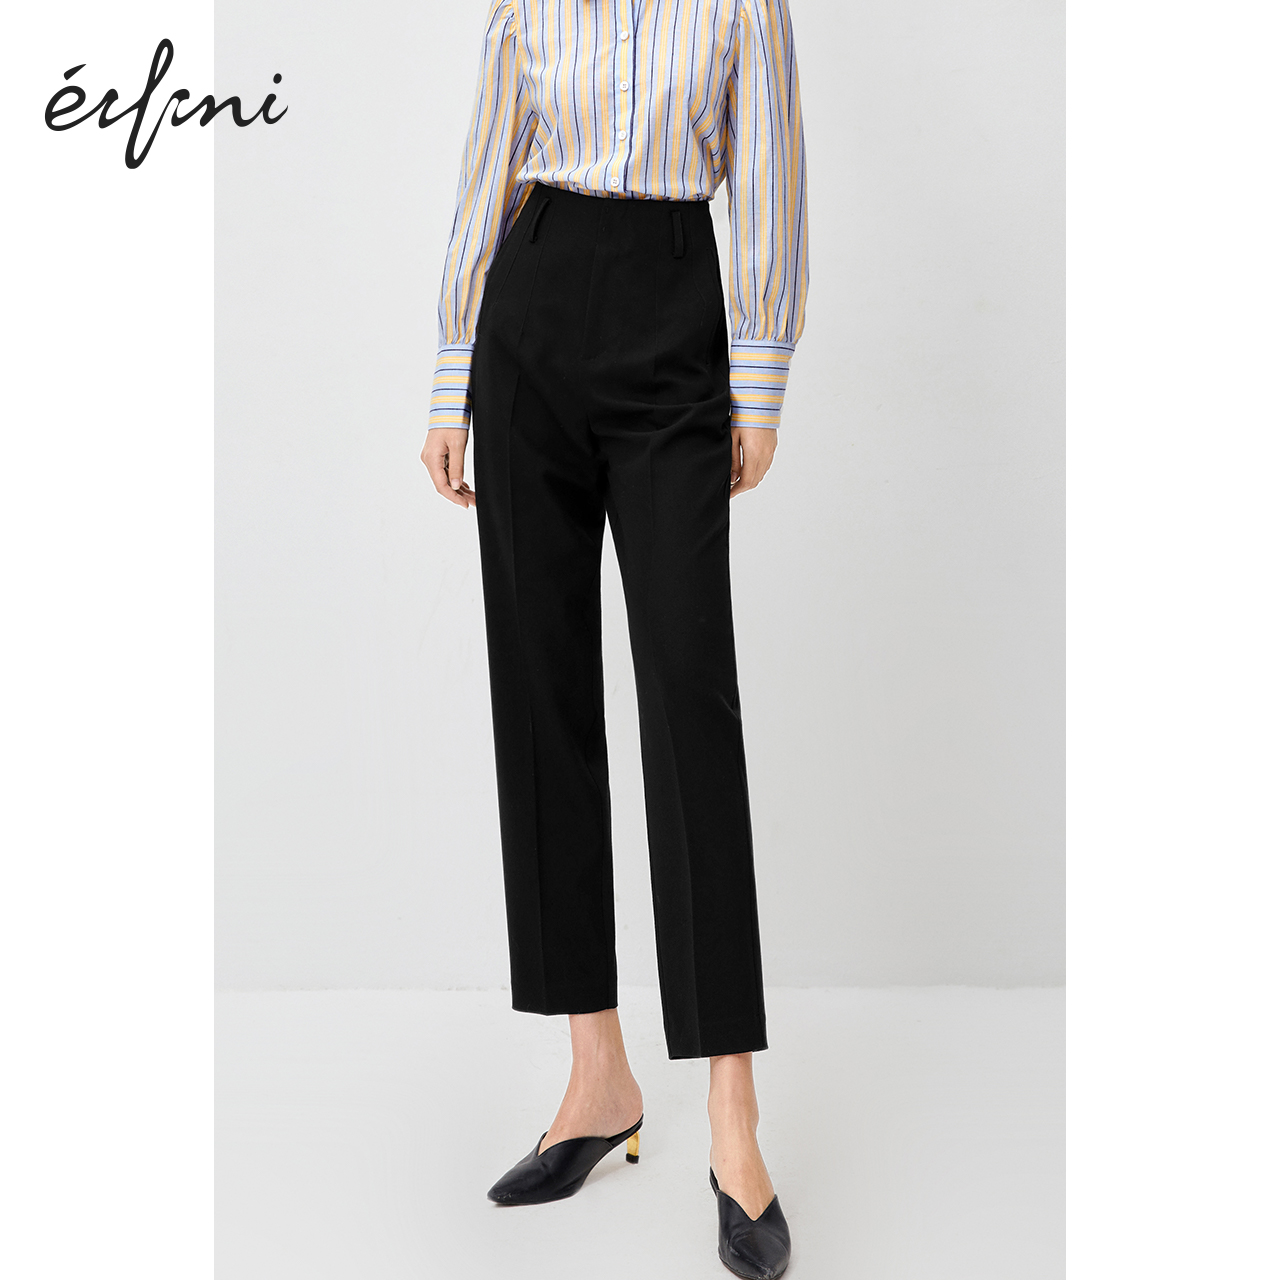 Eveli casual pants women's spring and autumn 2020 black thin pants are thin and versatile high-waist straight-leg suit pants